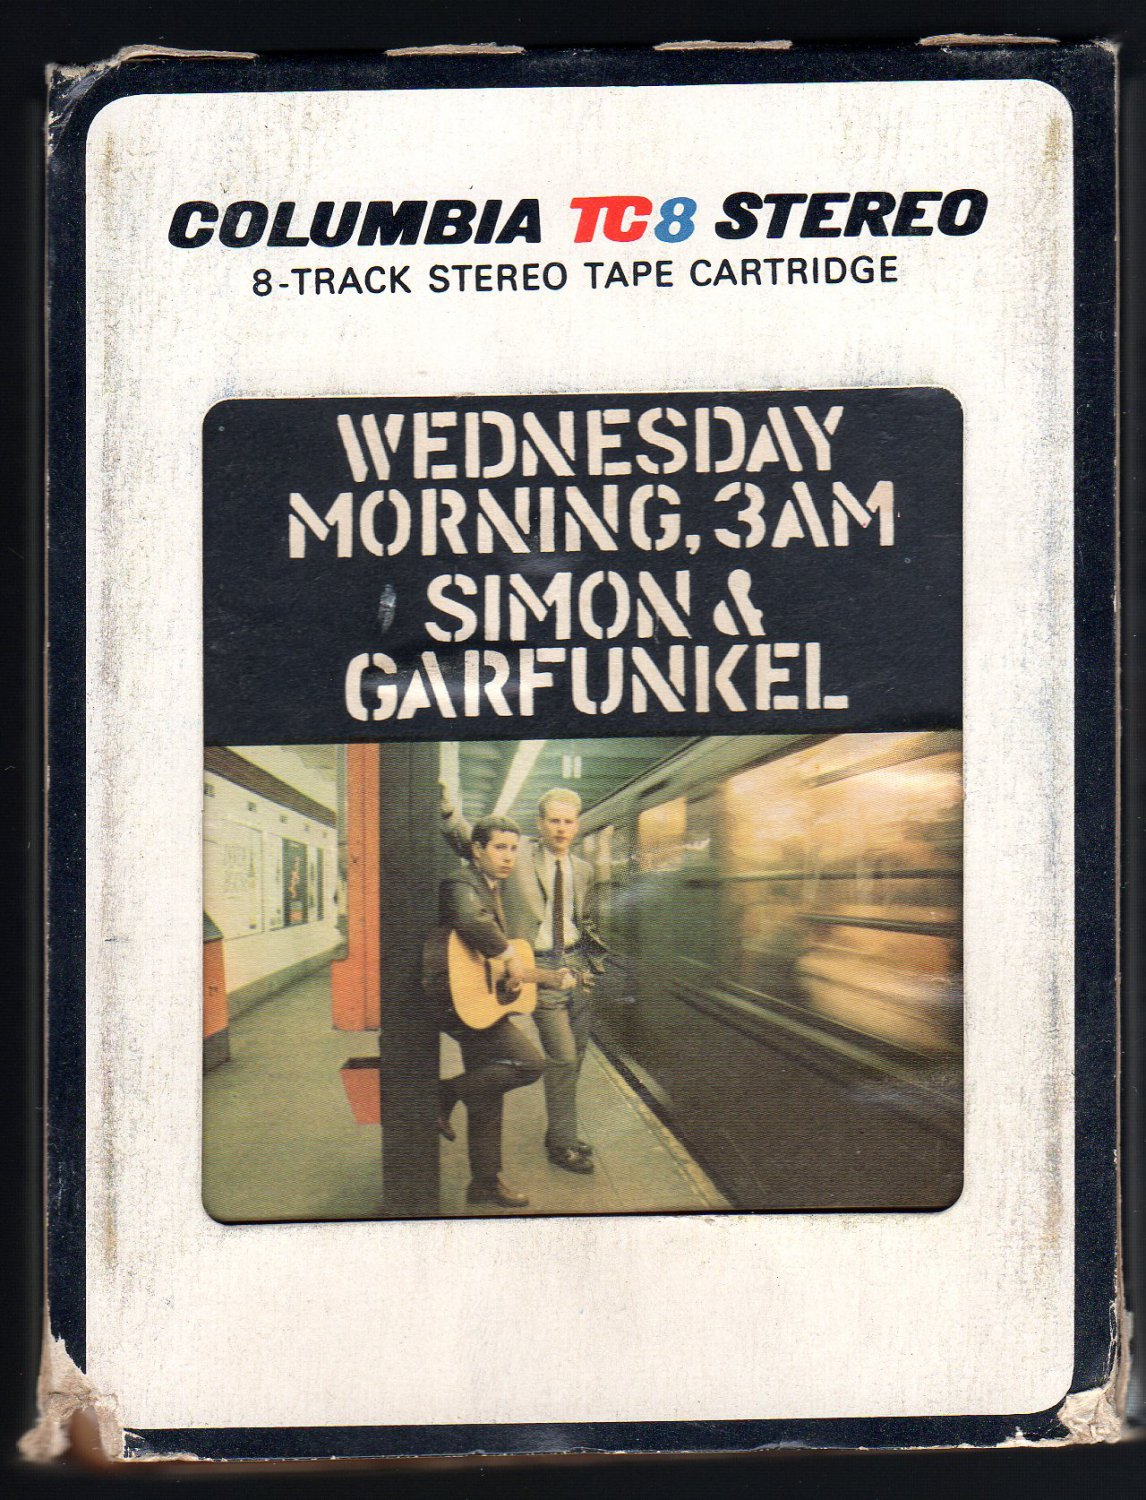 Paul Simon & Art Garfunkel - Wednesday Morning 3 A.M. 1964 Debut CBS Re-issue A22 8-TRACK TAPE